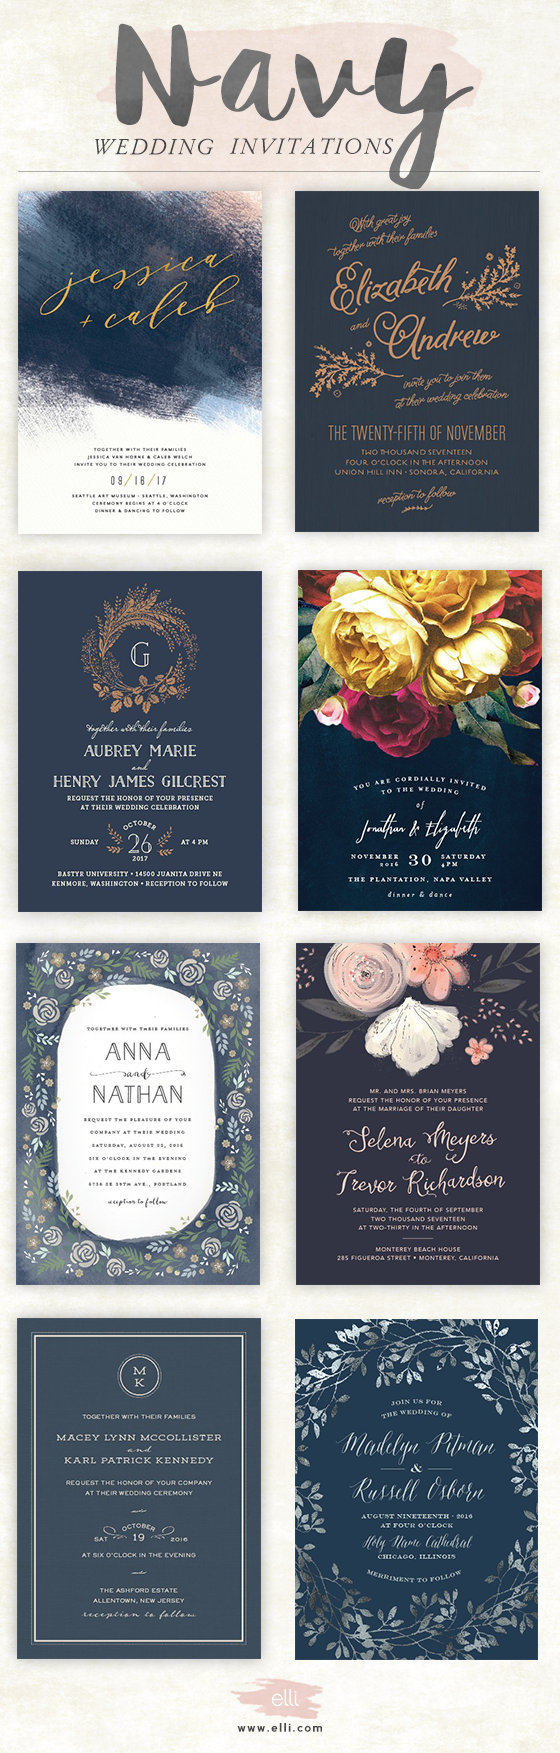 wedding card invitation cards online%0A Now trending  navy wedding invitations from Elli com